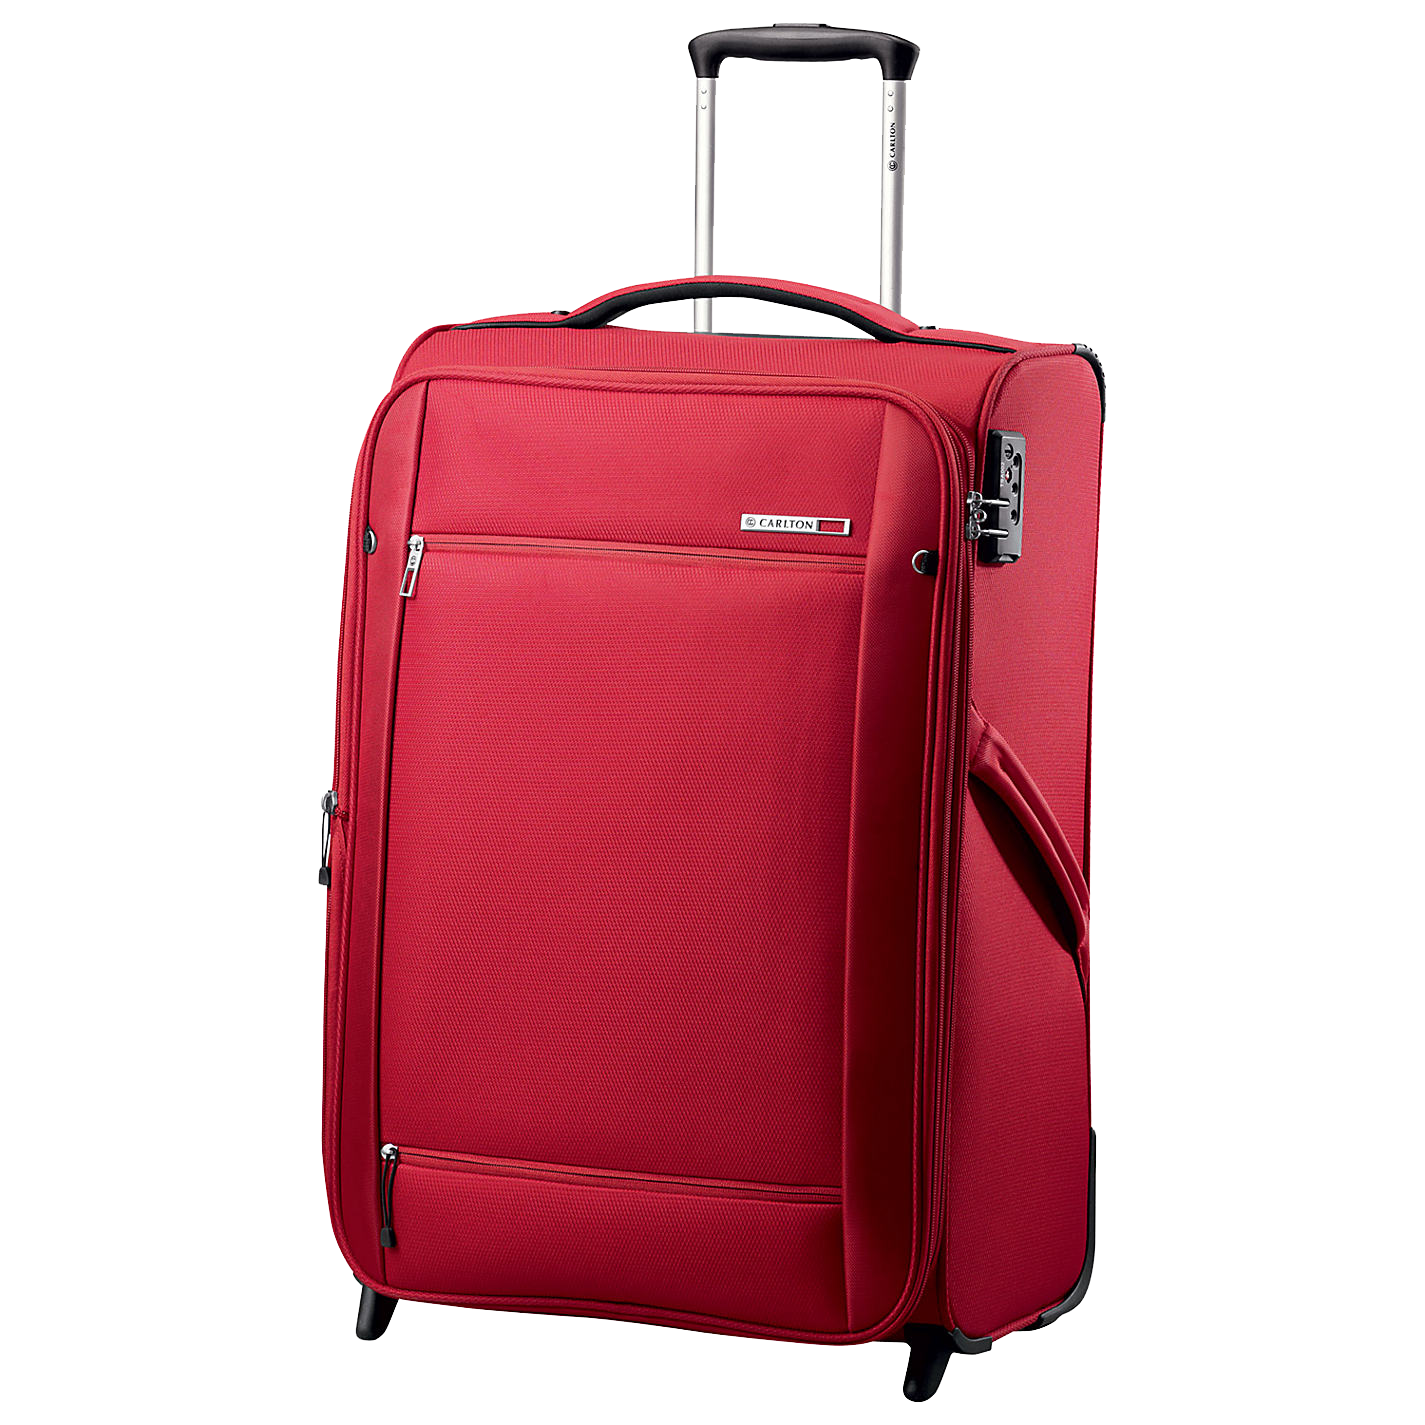 Suitcase Transparent PNG Image